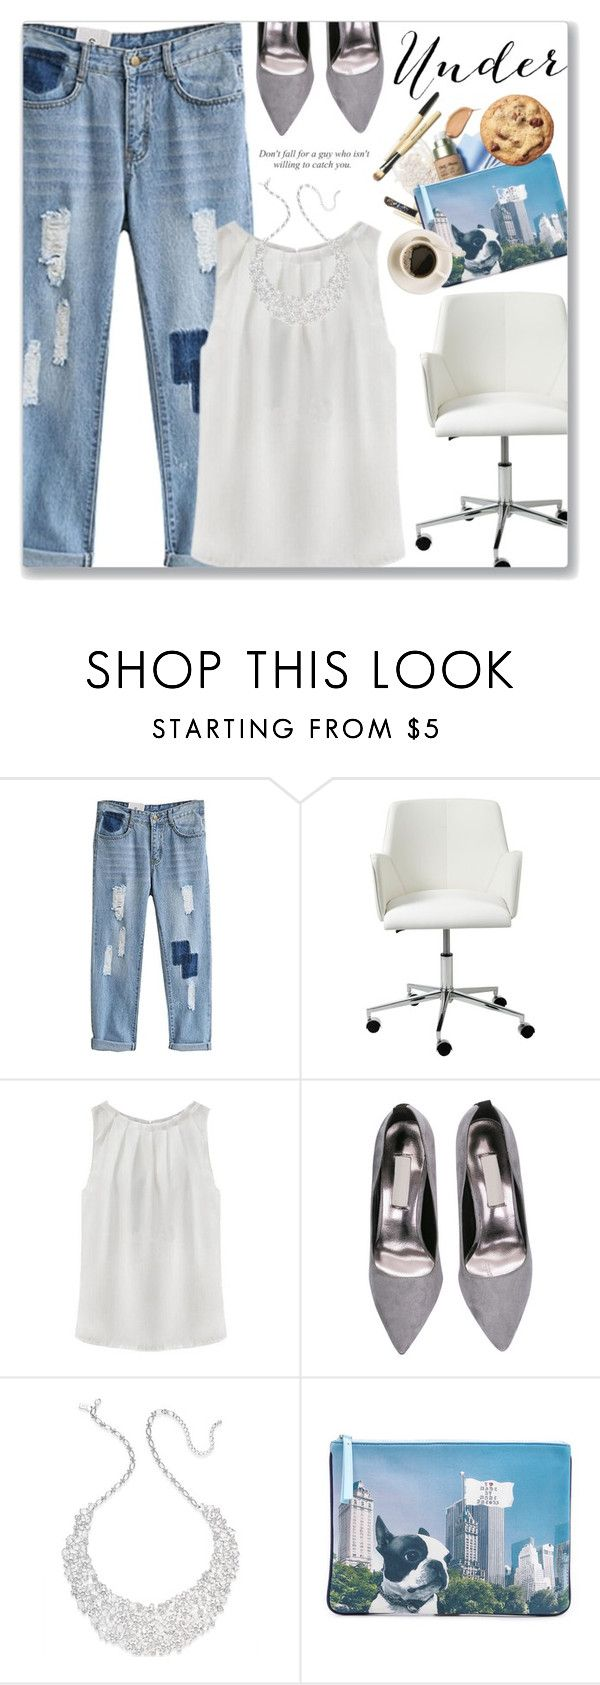 """""""Amor Prohibido, Baby Rasta y Gringo"""" by blendasantos ❤ liked on Polyvore featuring Universal Lighting and Decor, Kate Spade, Marc by Marc Jacobs, women's clothing, women, female, woman, misses, juniors and beautifulhalo"""